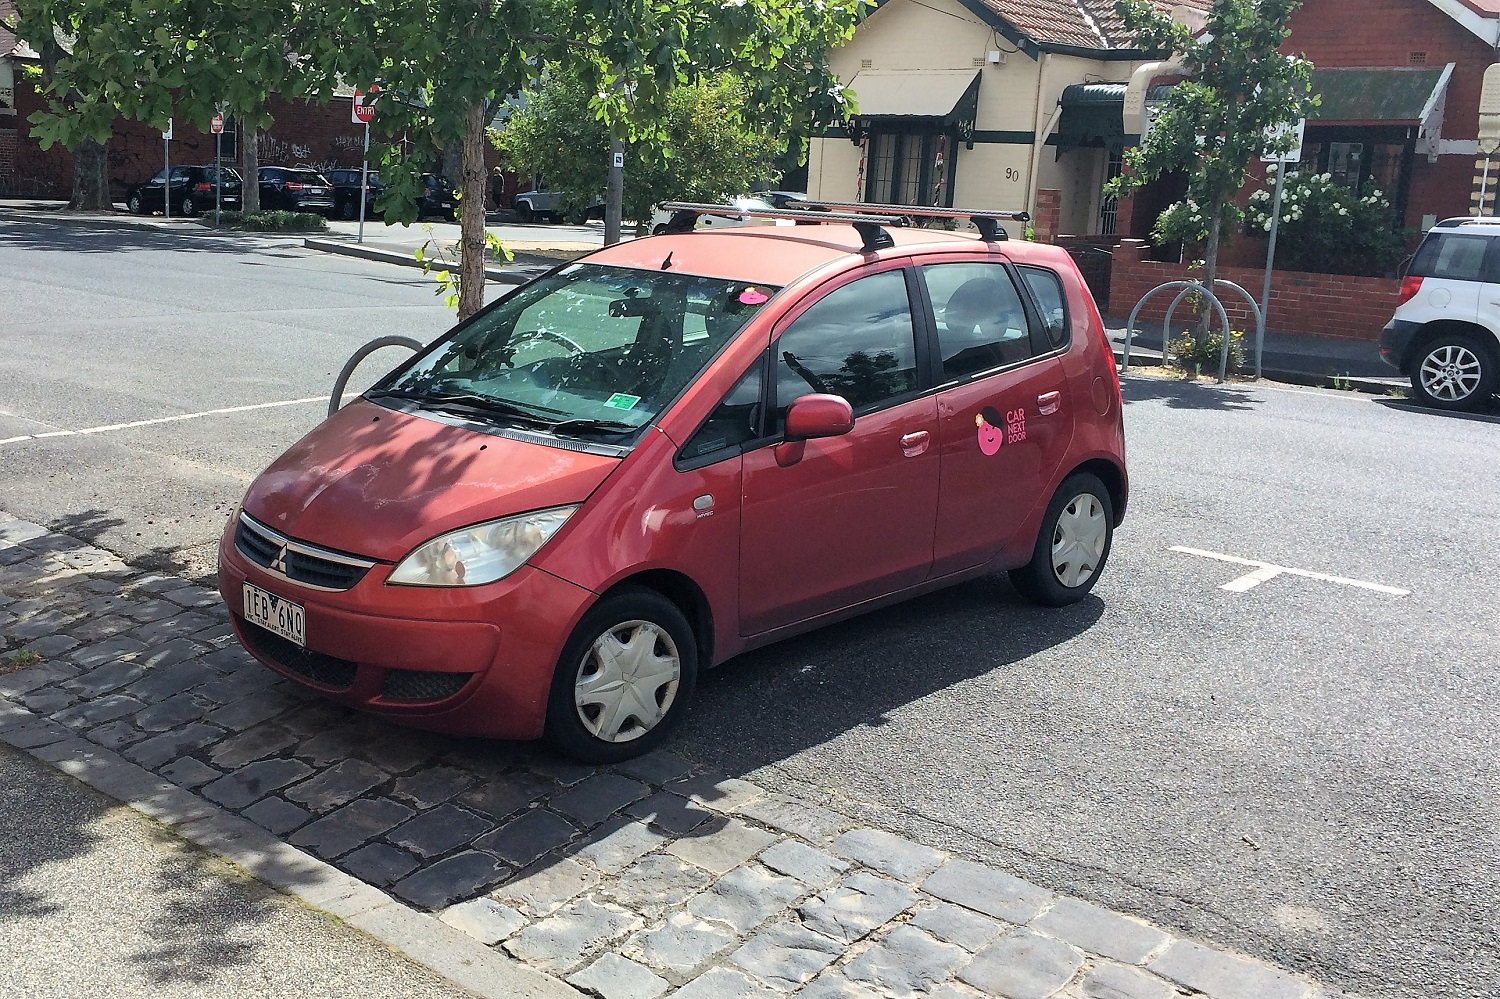 Picture of Candice's 2006 Mitsubishi Colt